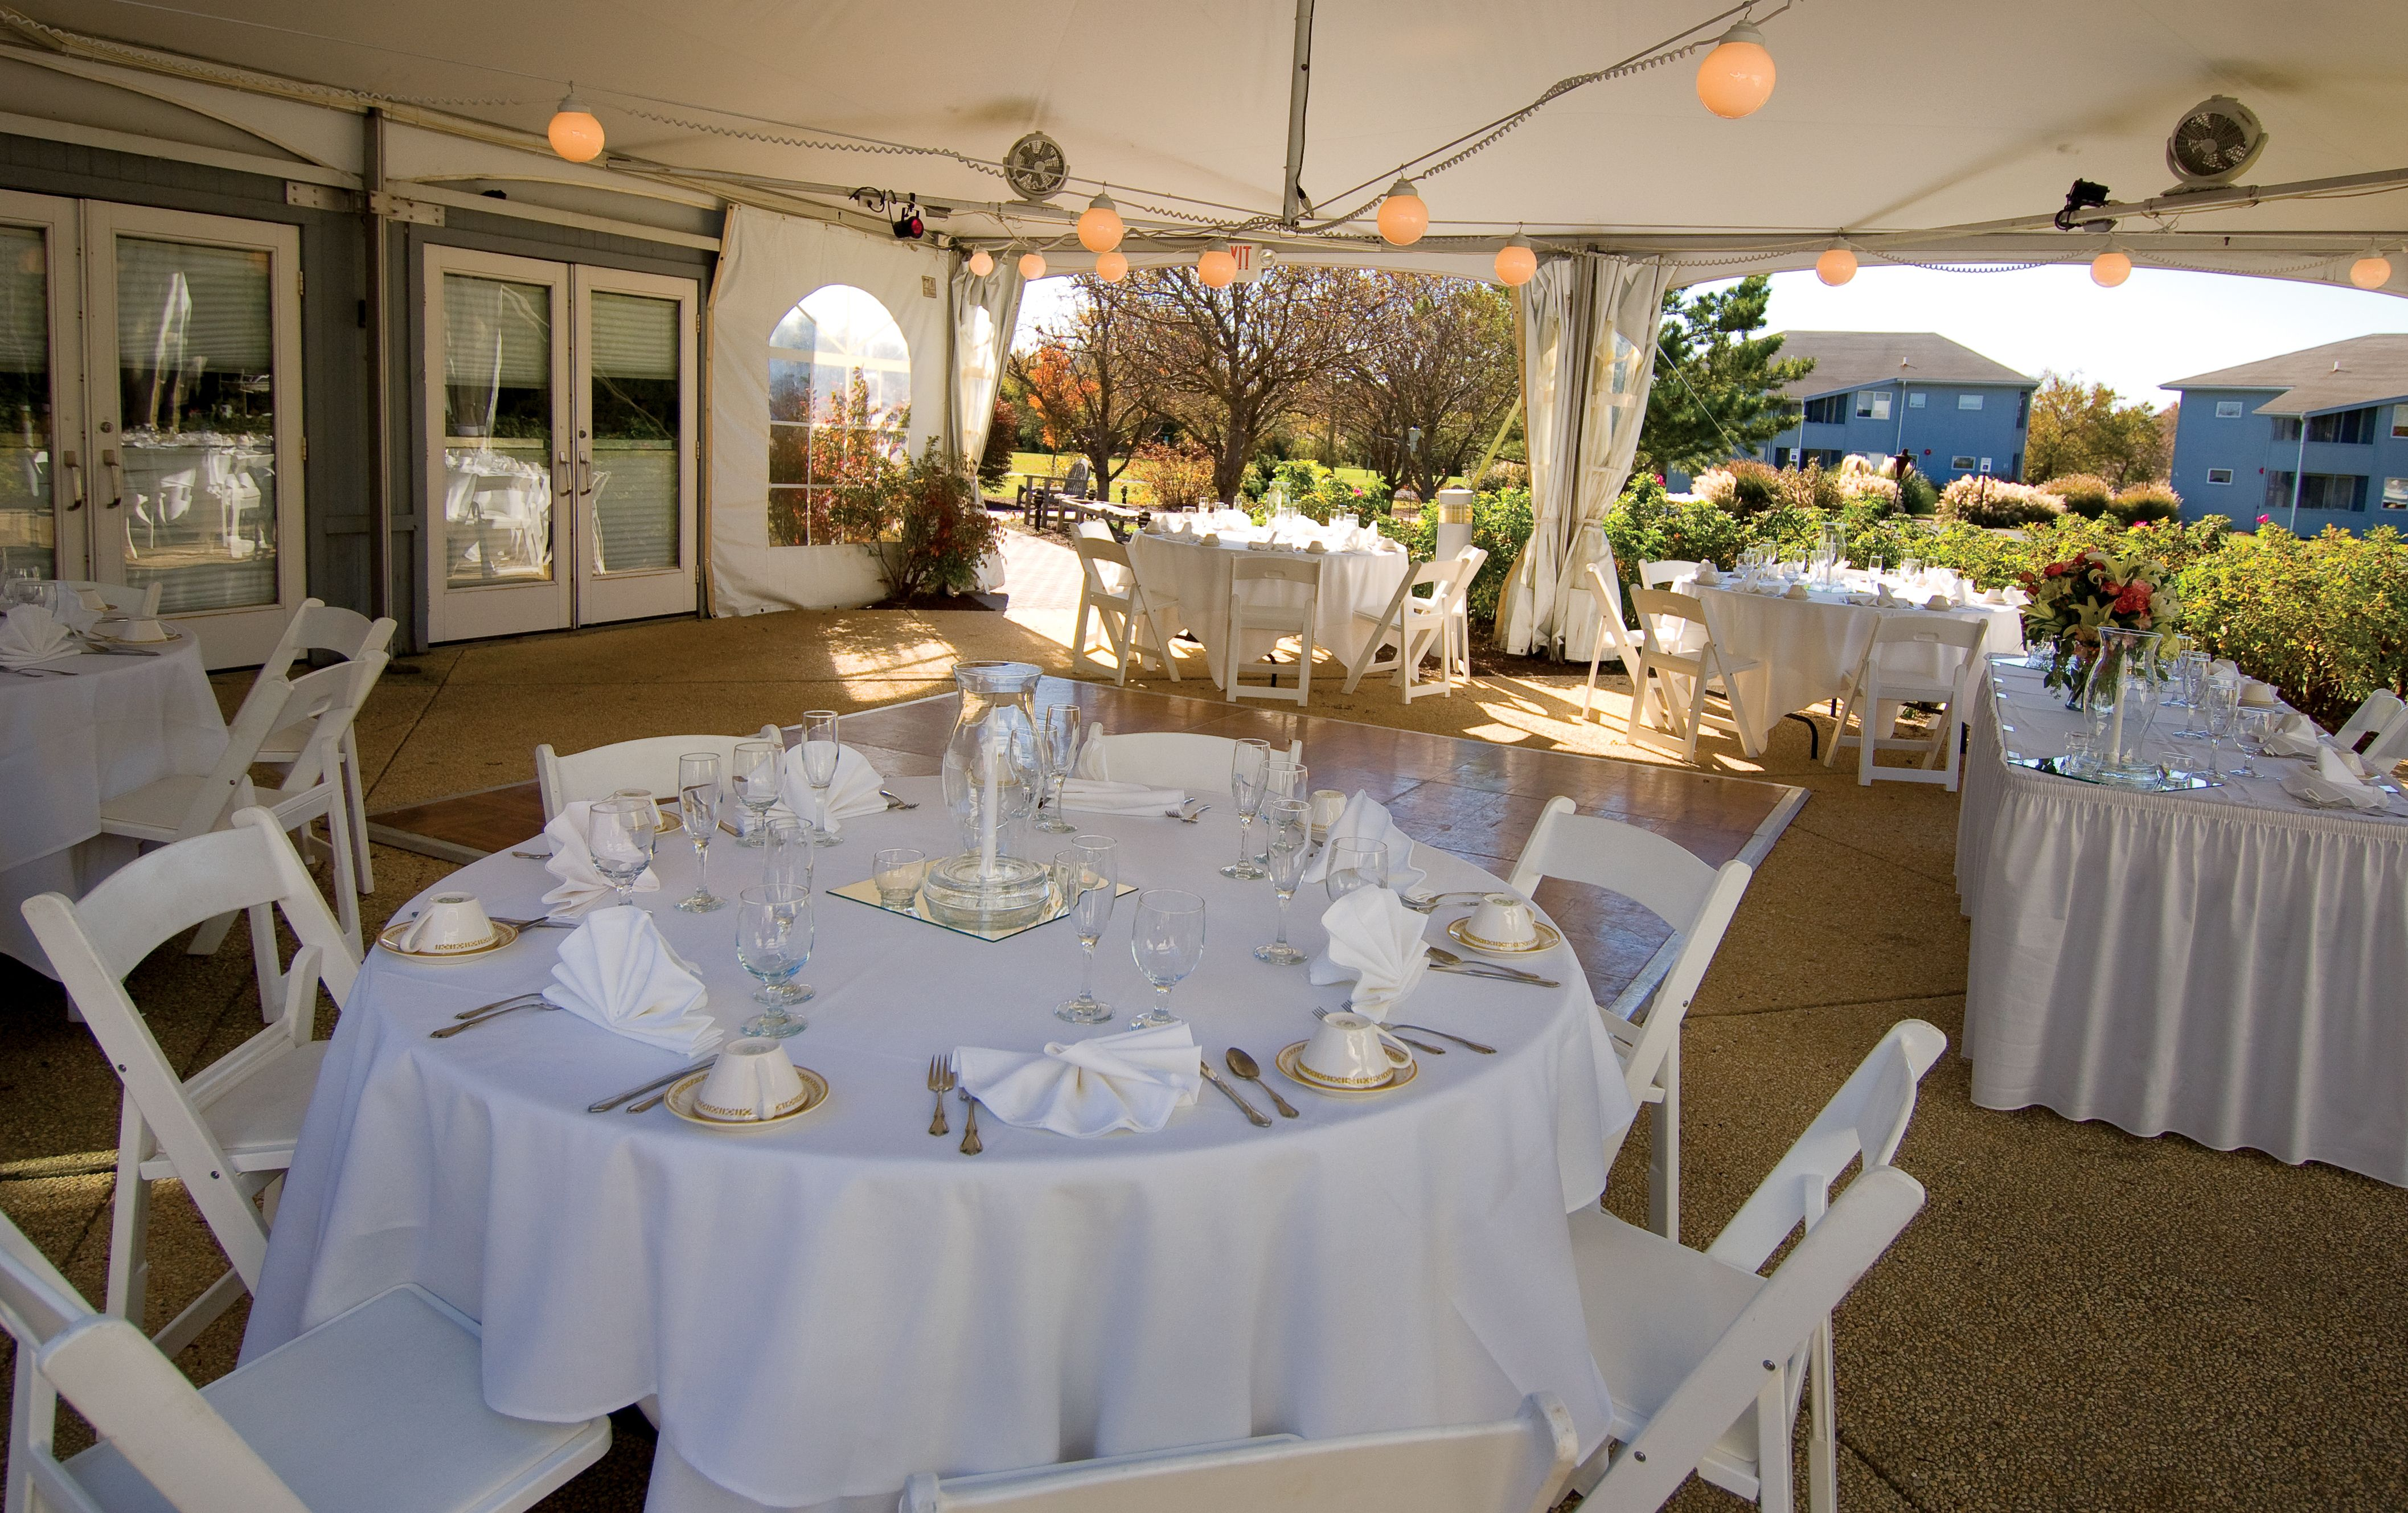 Relaxed beach wedding  Enjoy a relaxed wedding under the tent at the Virden Center in Lewes